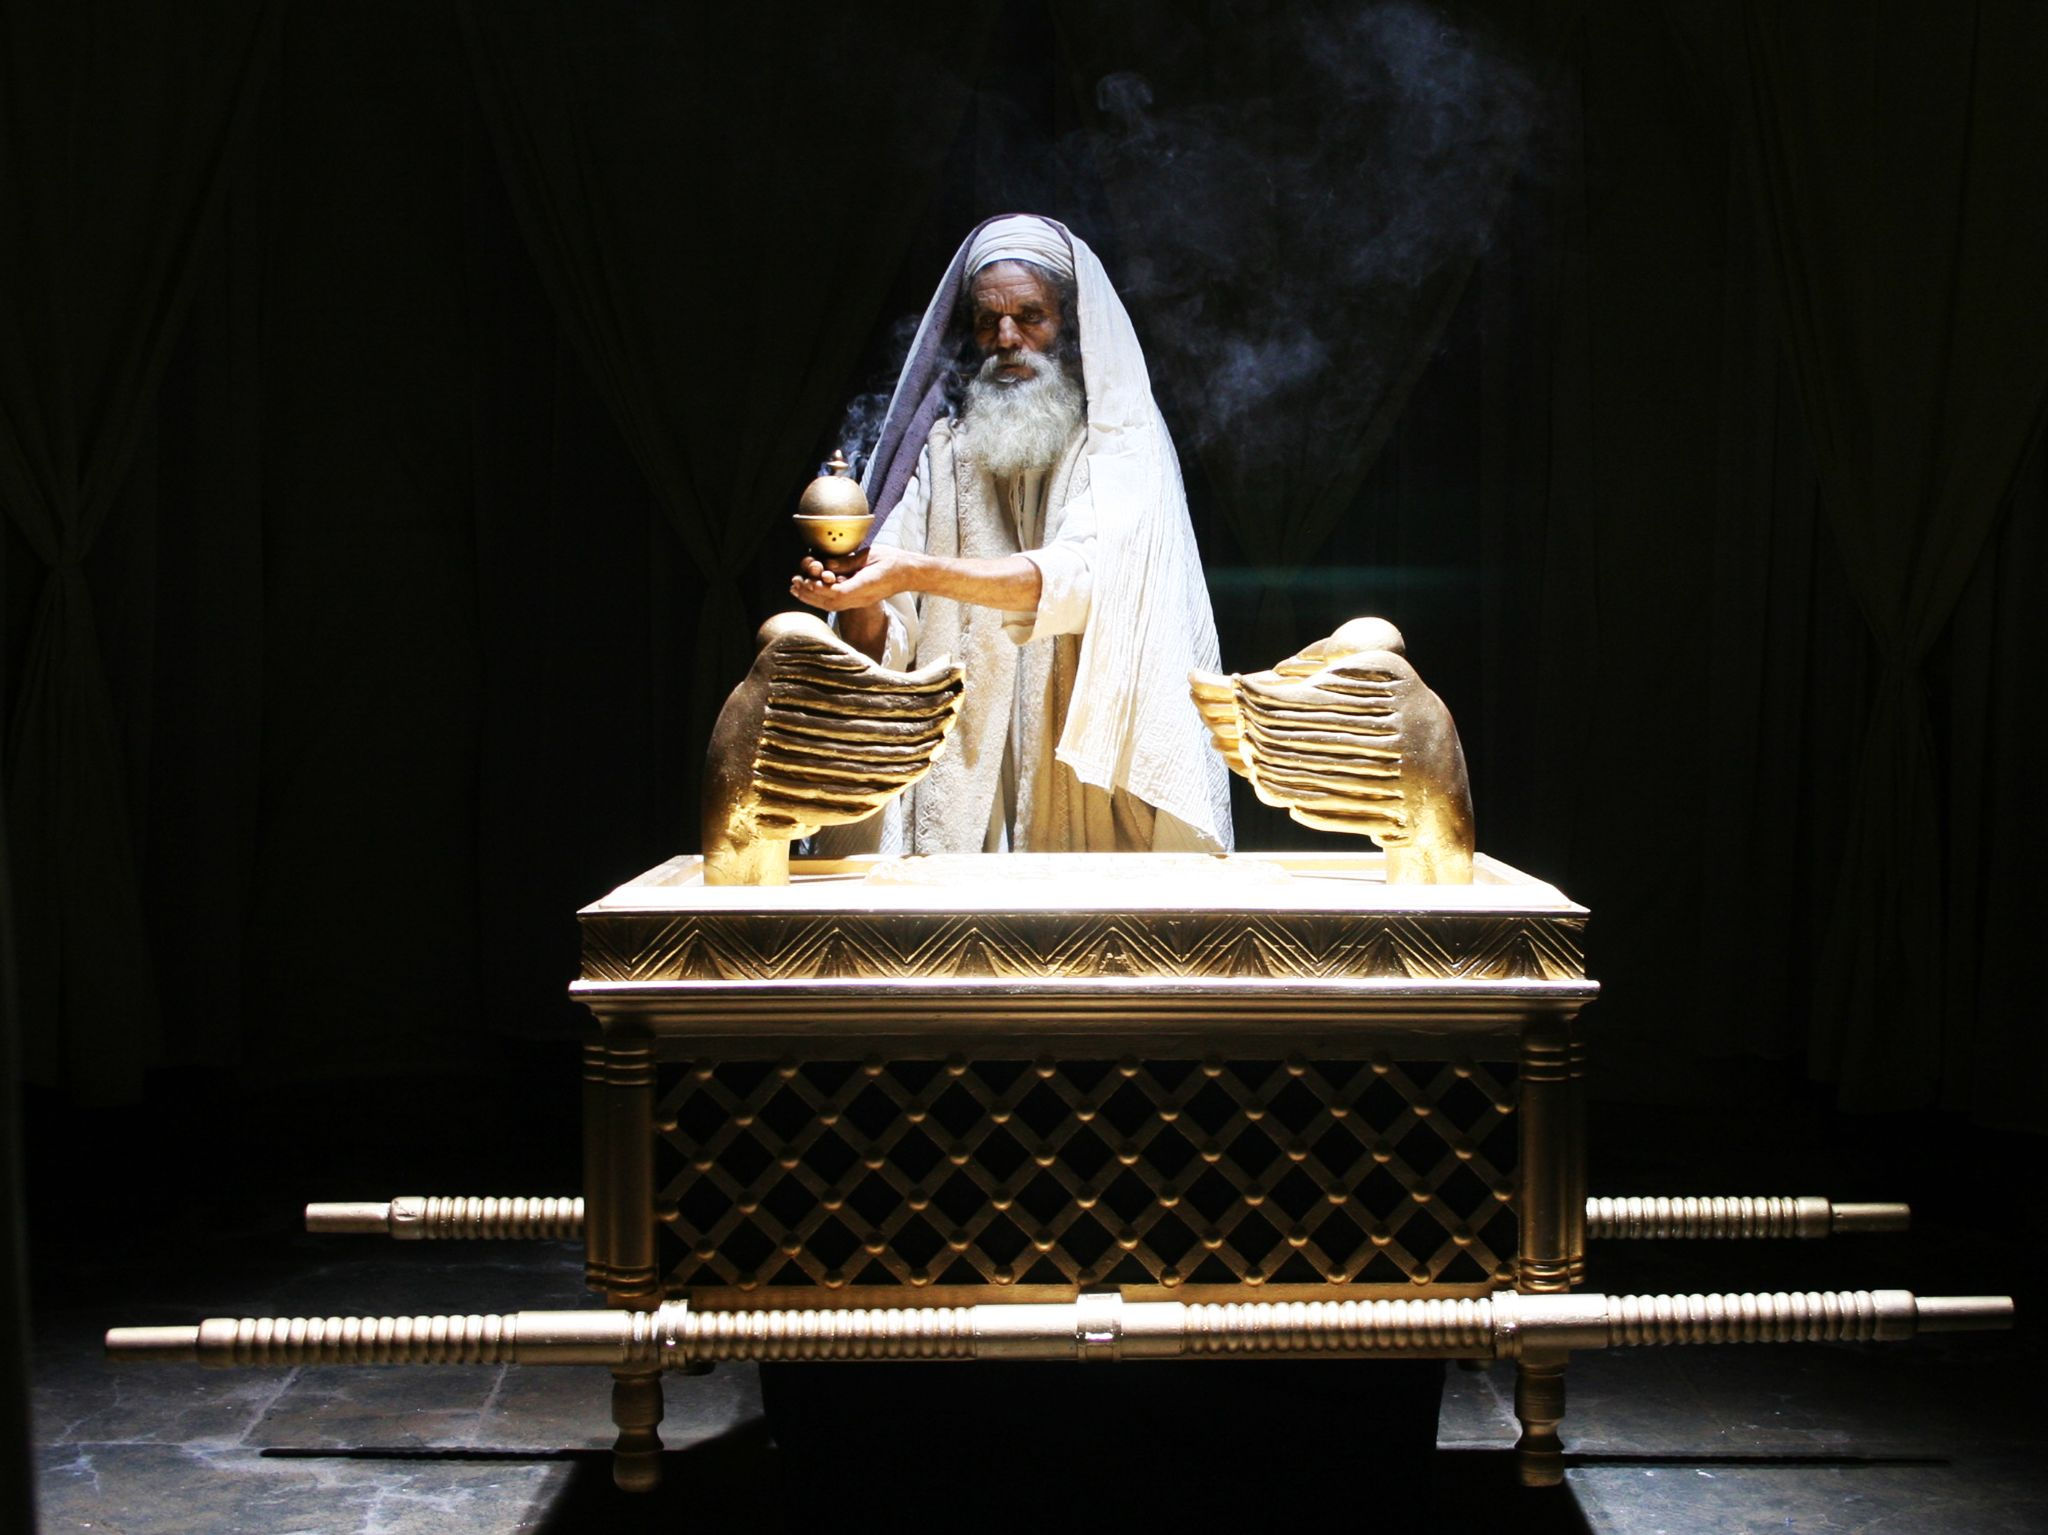 Dramatisation: High Priest burning incense inside the Holy of Holies in the Temple. This image... [Photo of the day - 八月 2017]